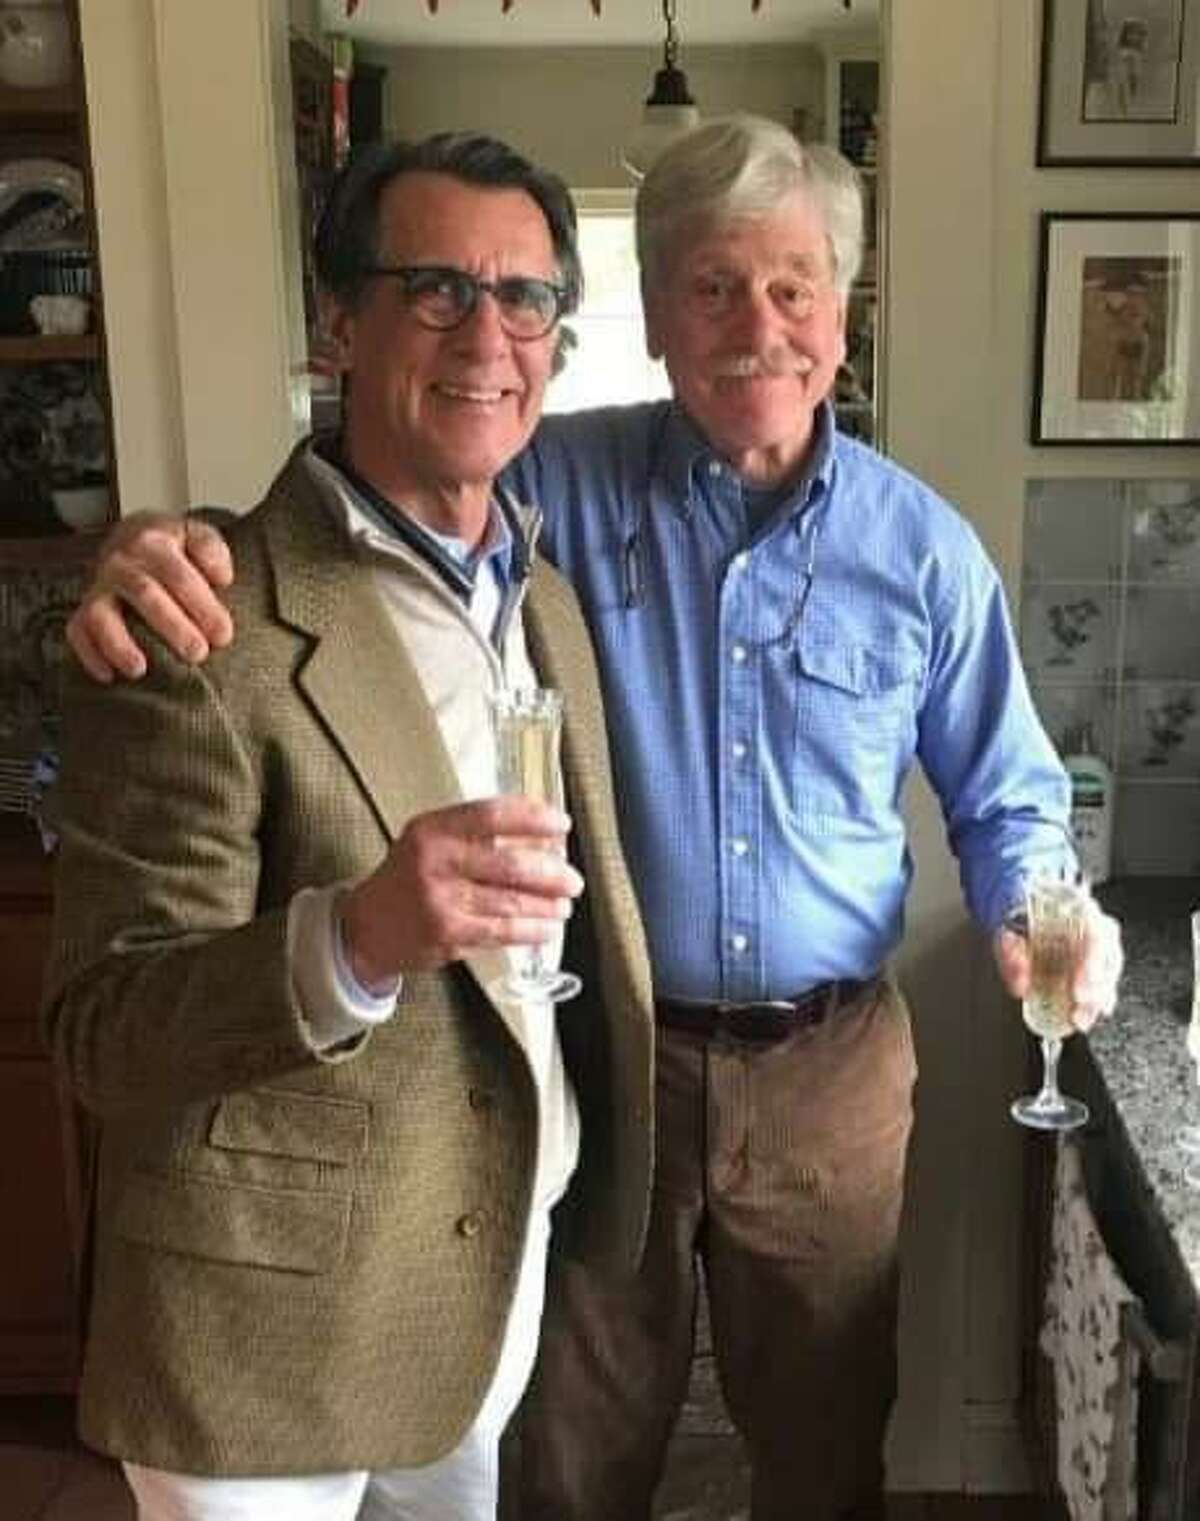 Above are, Dr. Mark Baus, left, and Dr. Harry Werner.